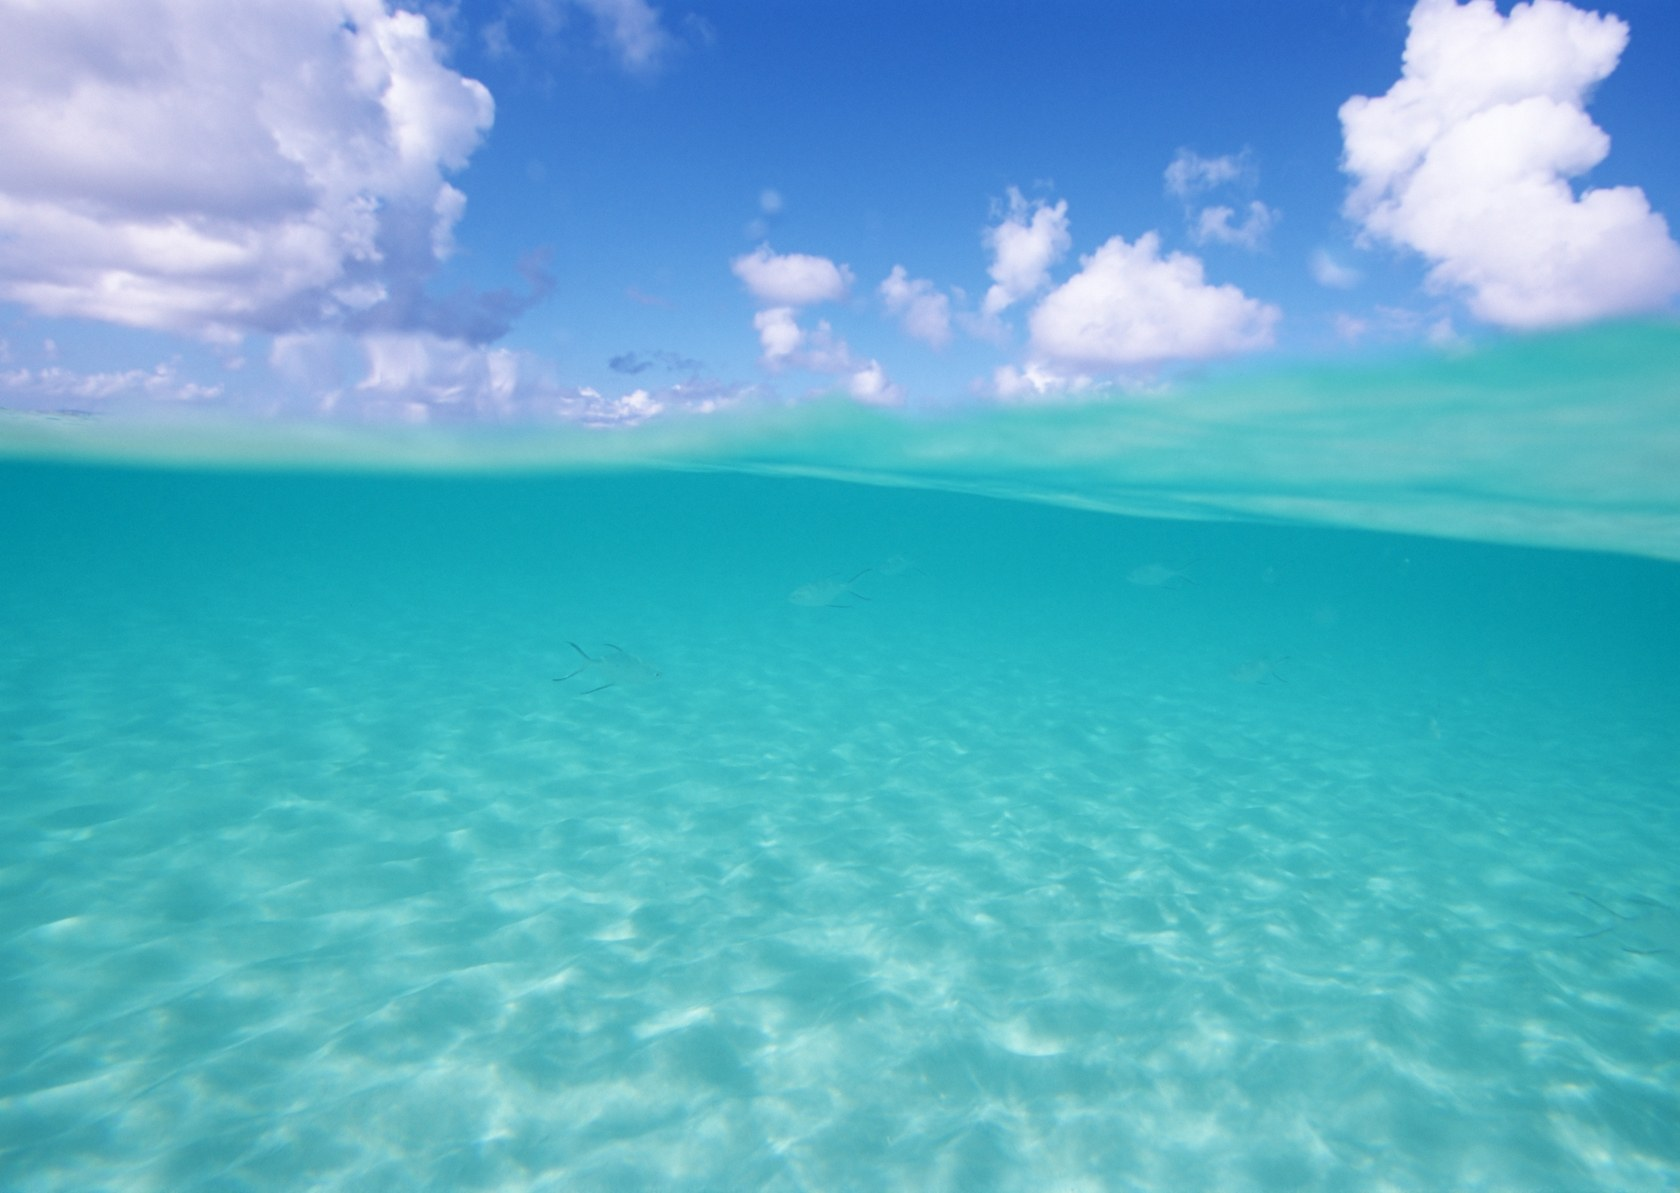 Okinawa's Beautiful Sea : Okinawa's Aquamarine Water And